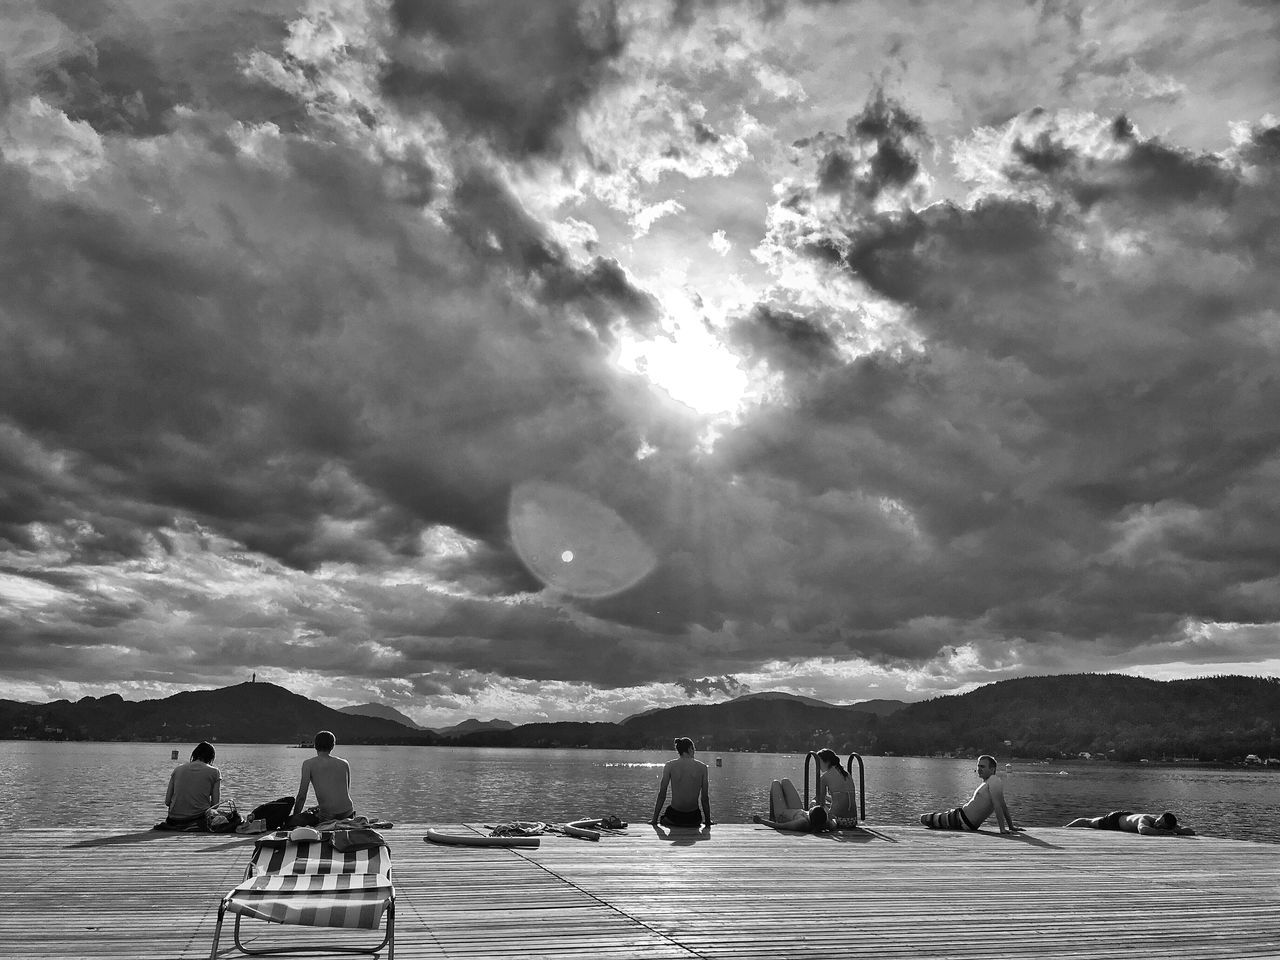 cloud - sky, sky, water, nature, mountain, beauty in nature, outdoors, real people, scenics, day, men, nautical vessel, people